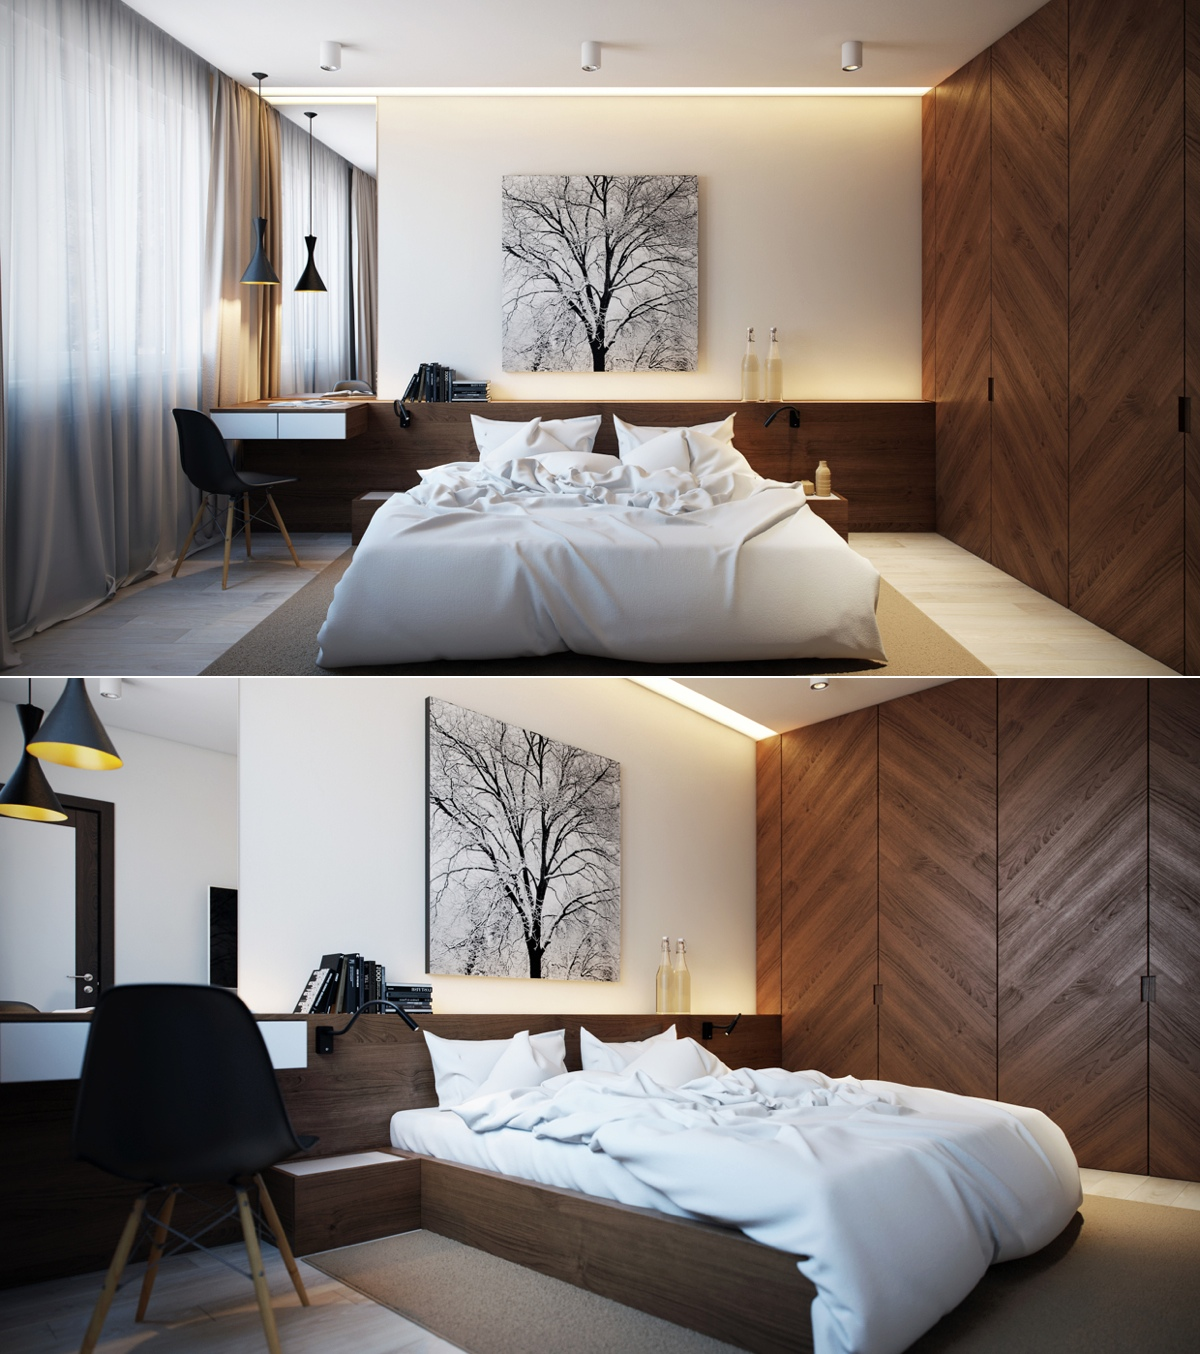 modern bedroom design ideas for rooms of any size On modern bedroom art ideas